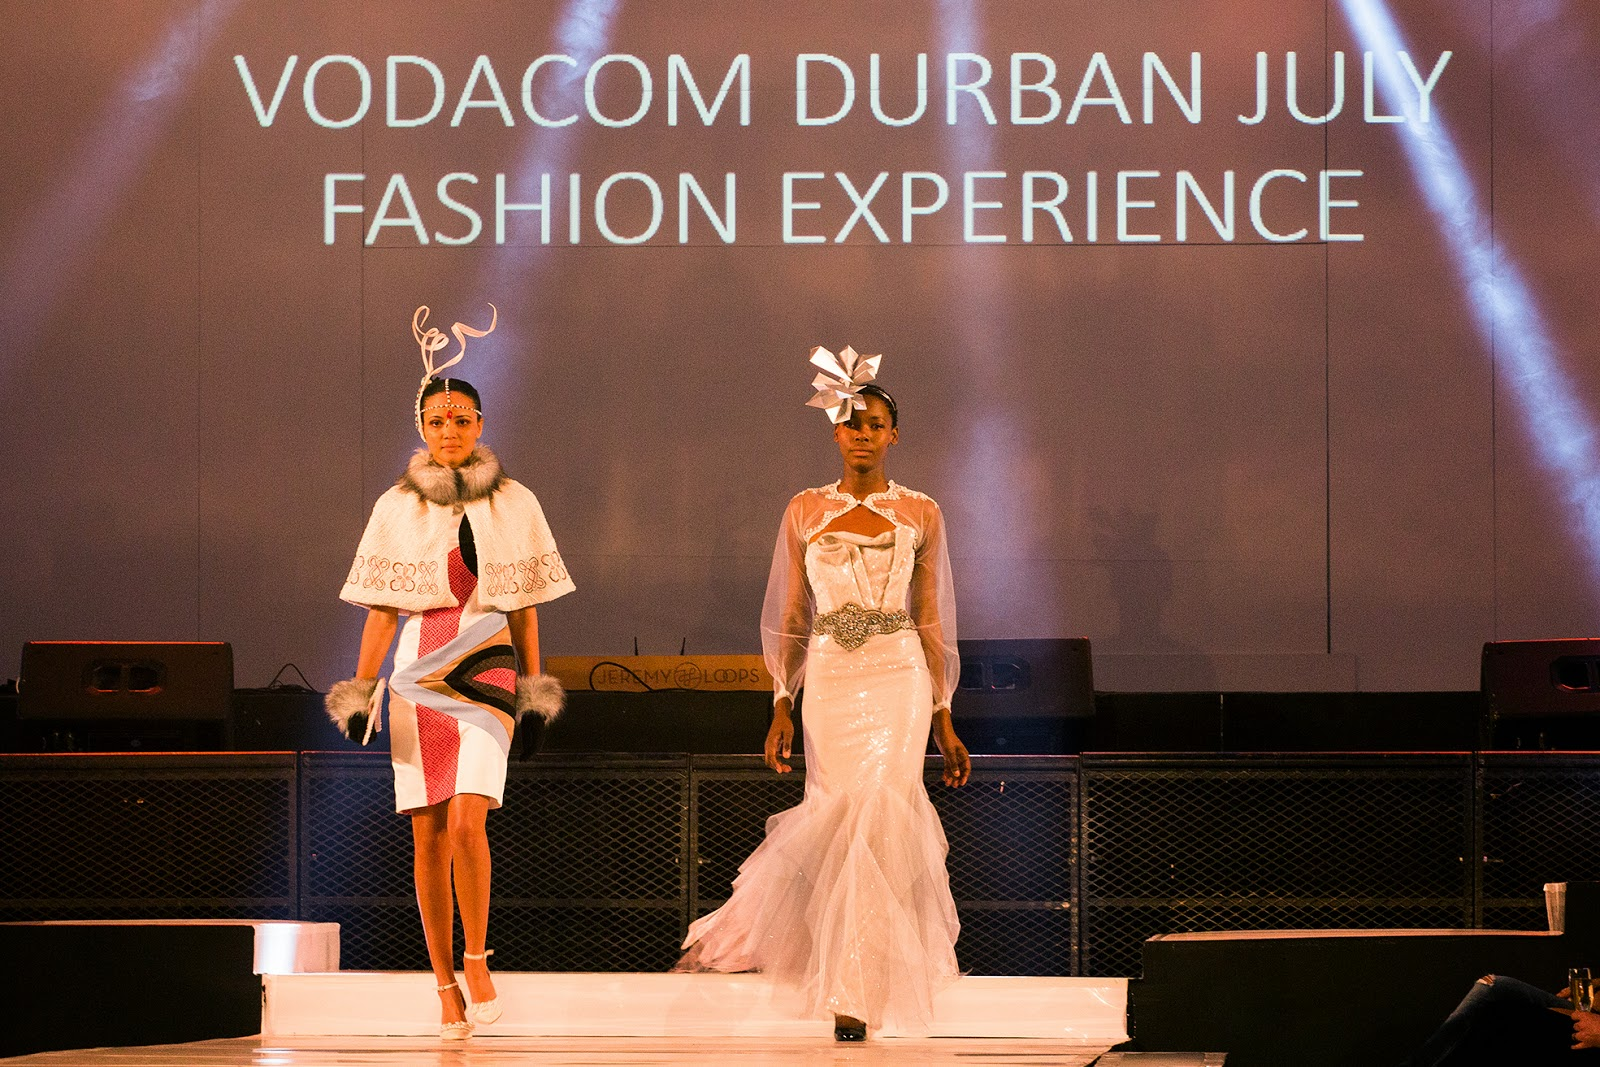 Fashion Overview - Vodacom Durban July 23